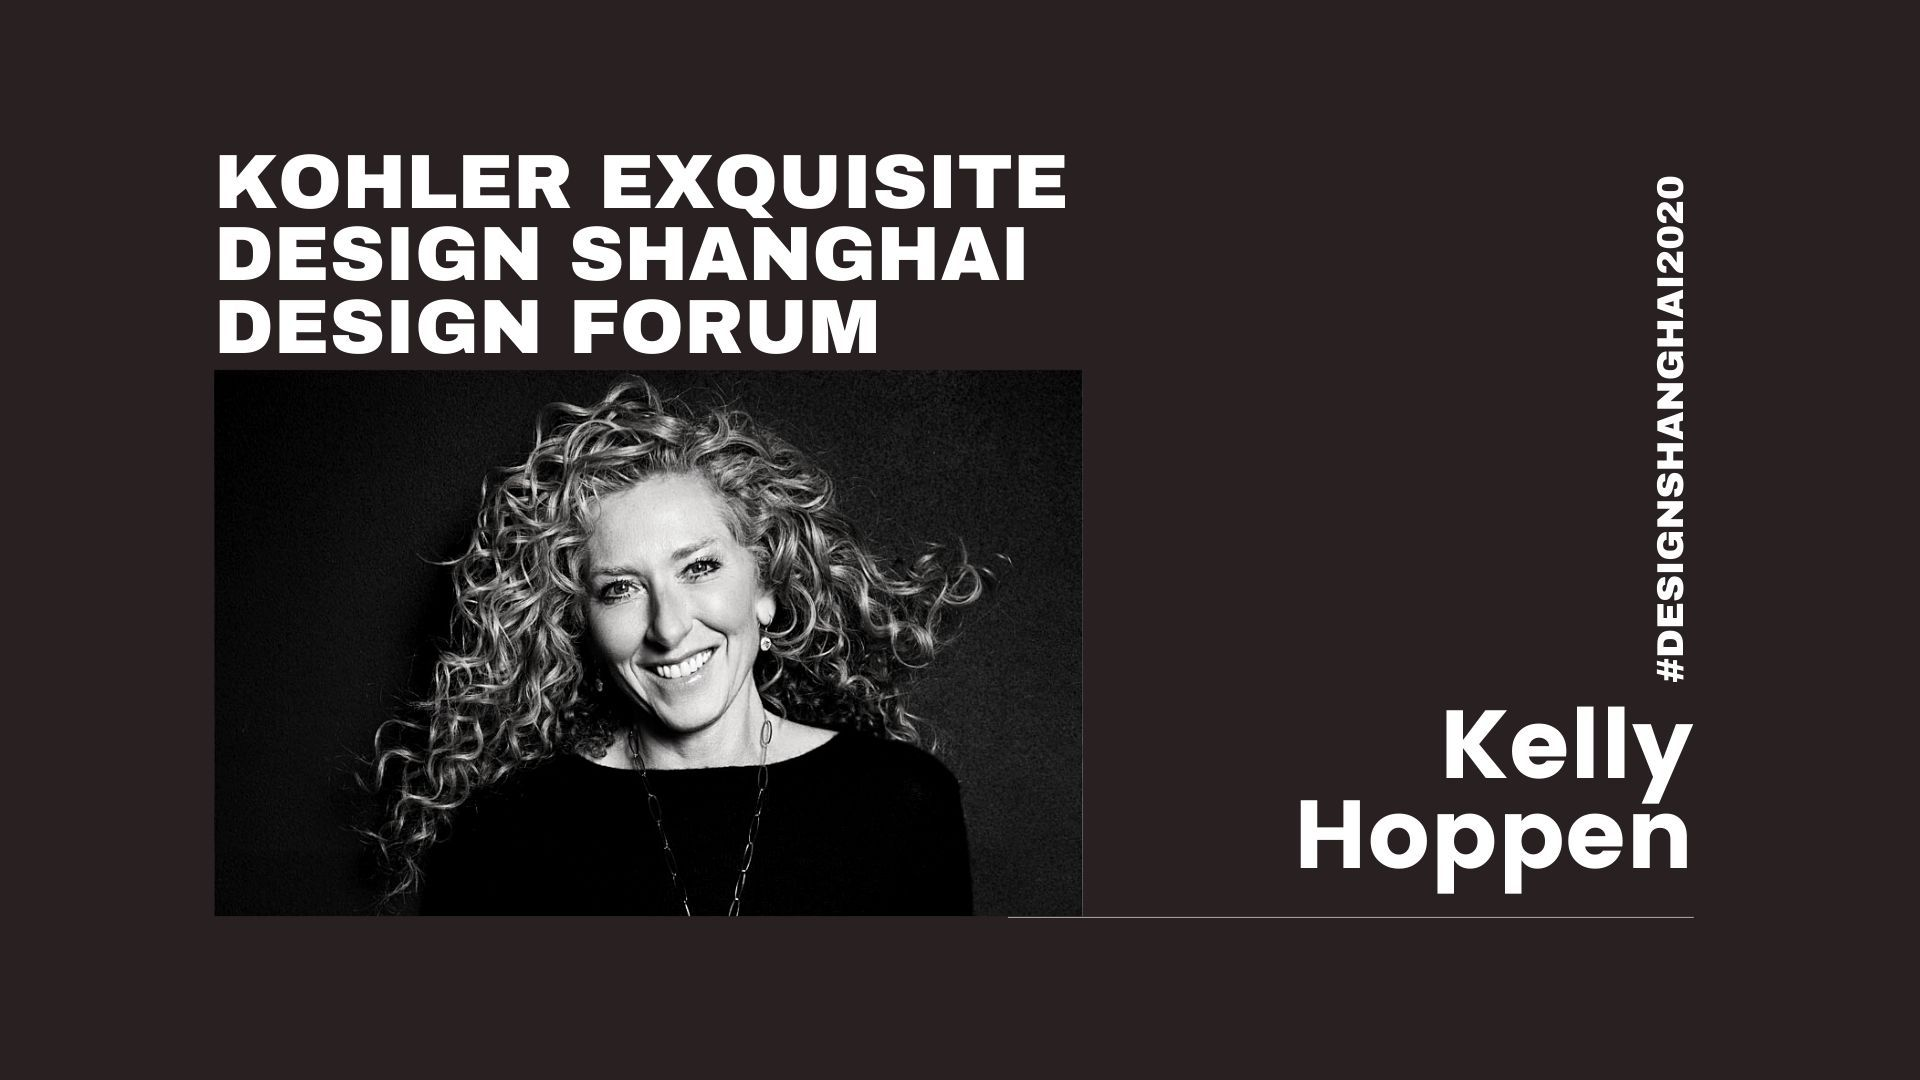 Kelly Hoppen: Designs For A Post-Covid World